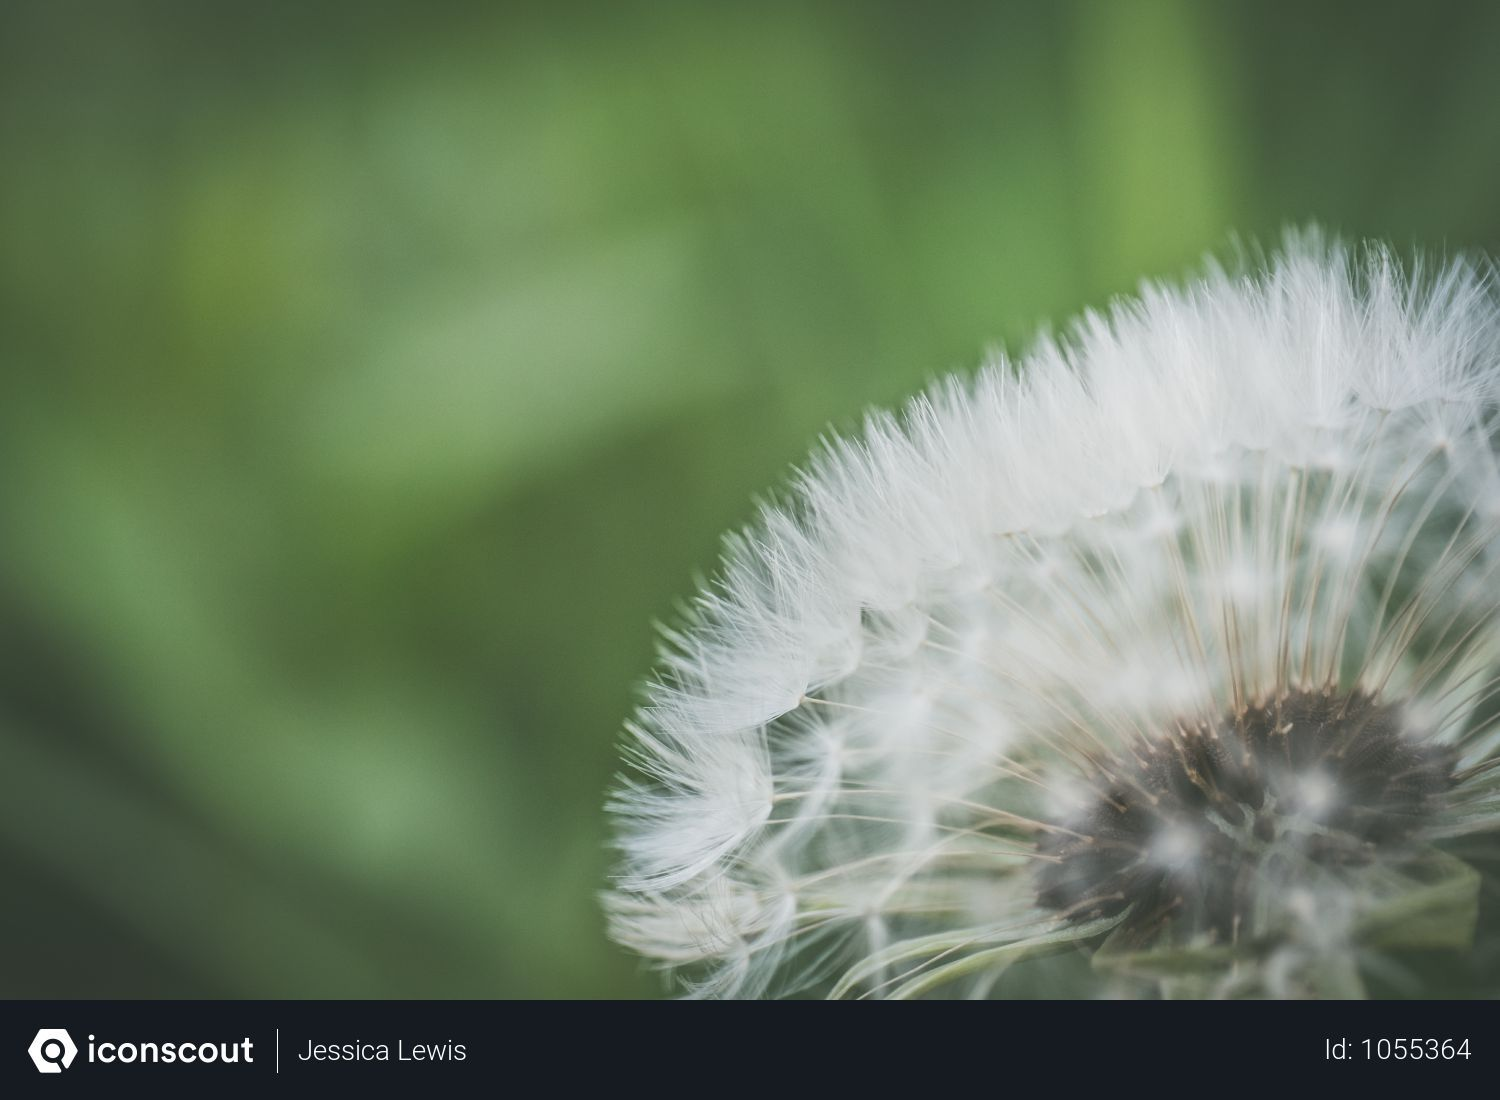 Free Close Up Photo Of White Dandelion Flower In Garden Photo Flowers Photos White Dandelion Garden Photos Dandelion Flower